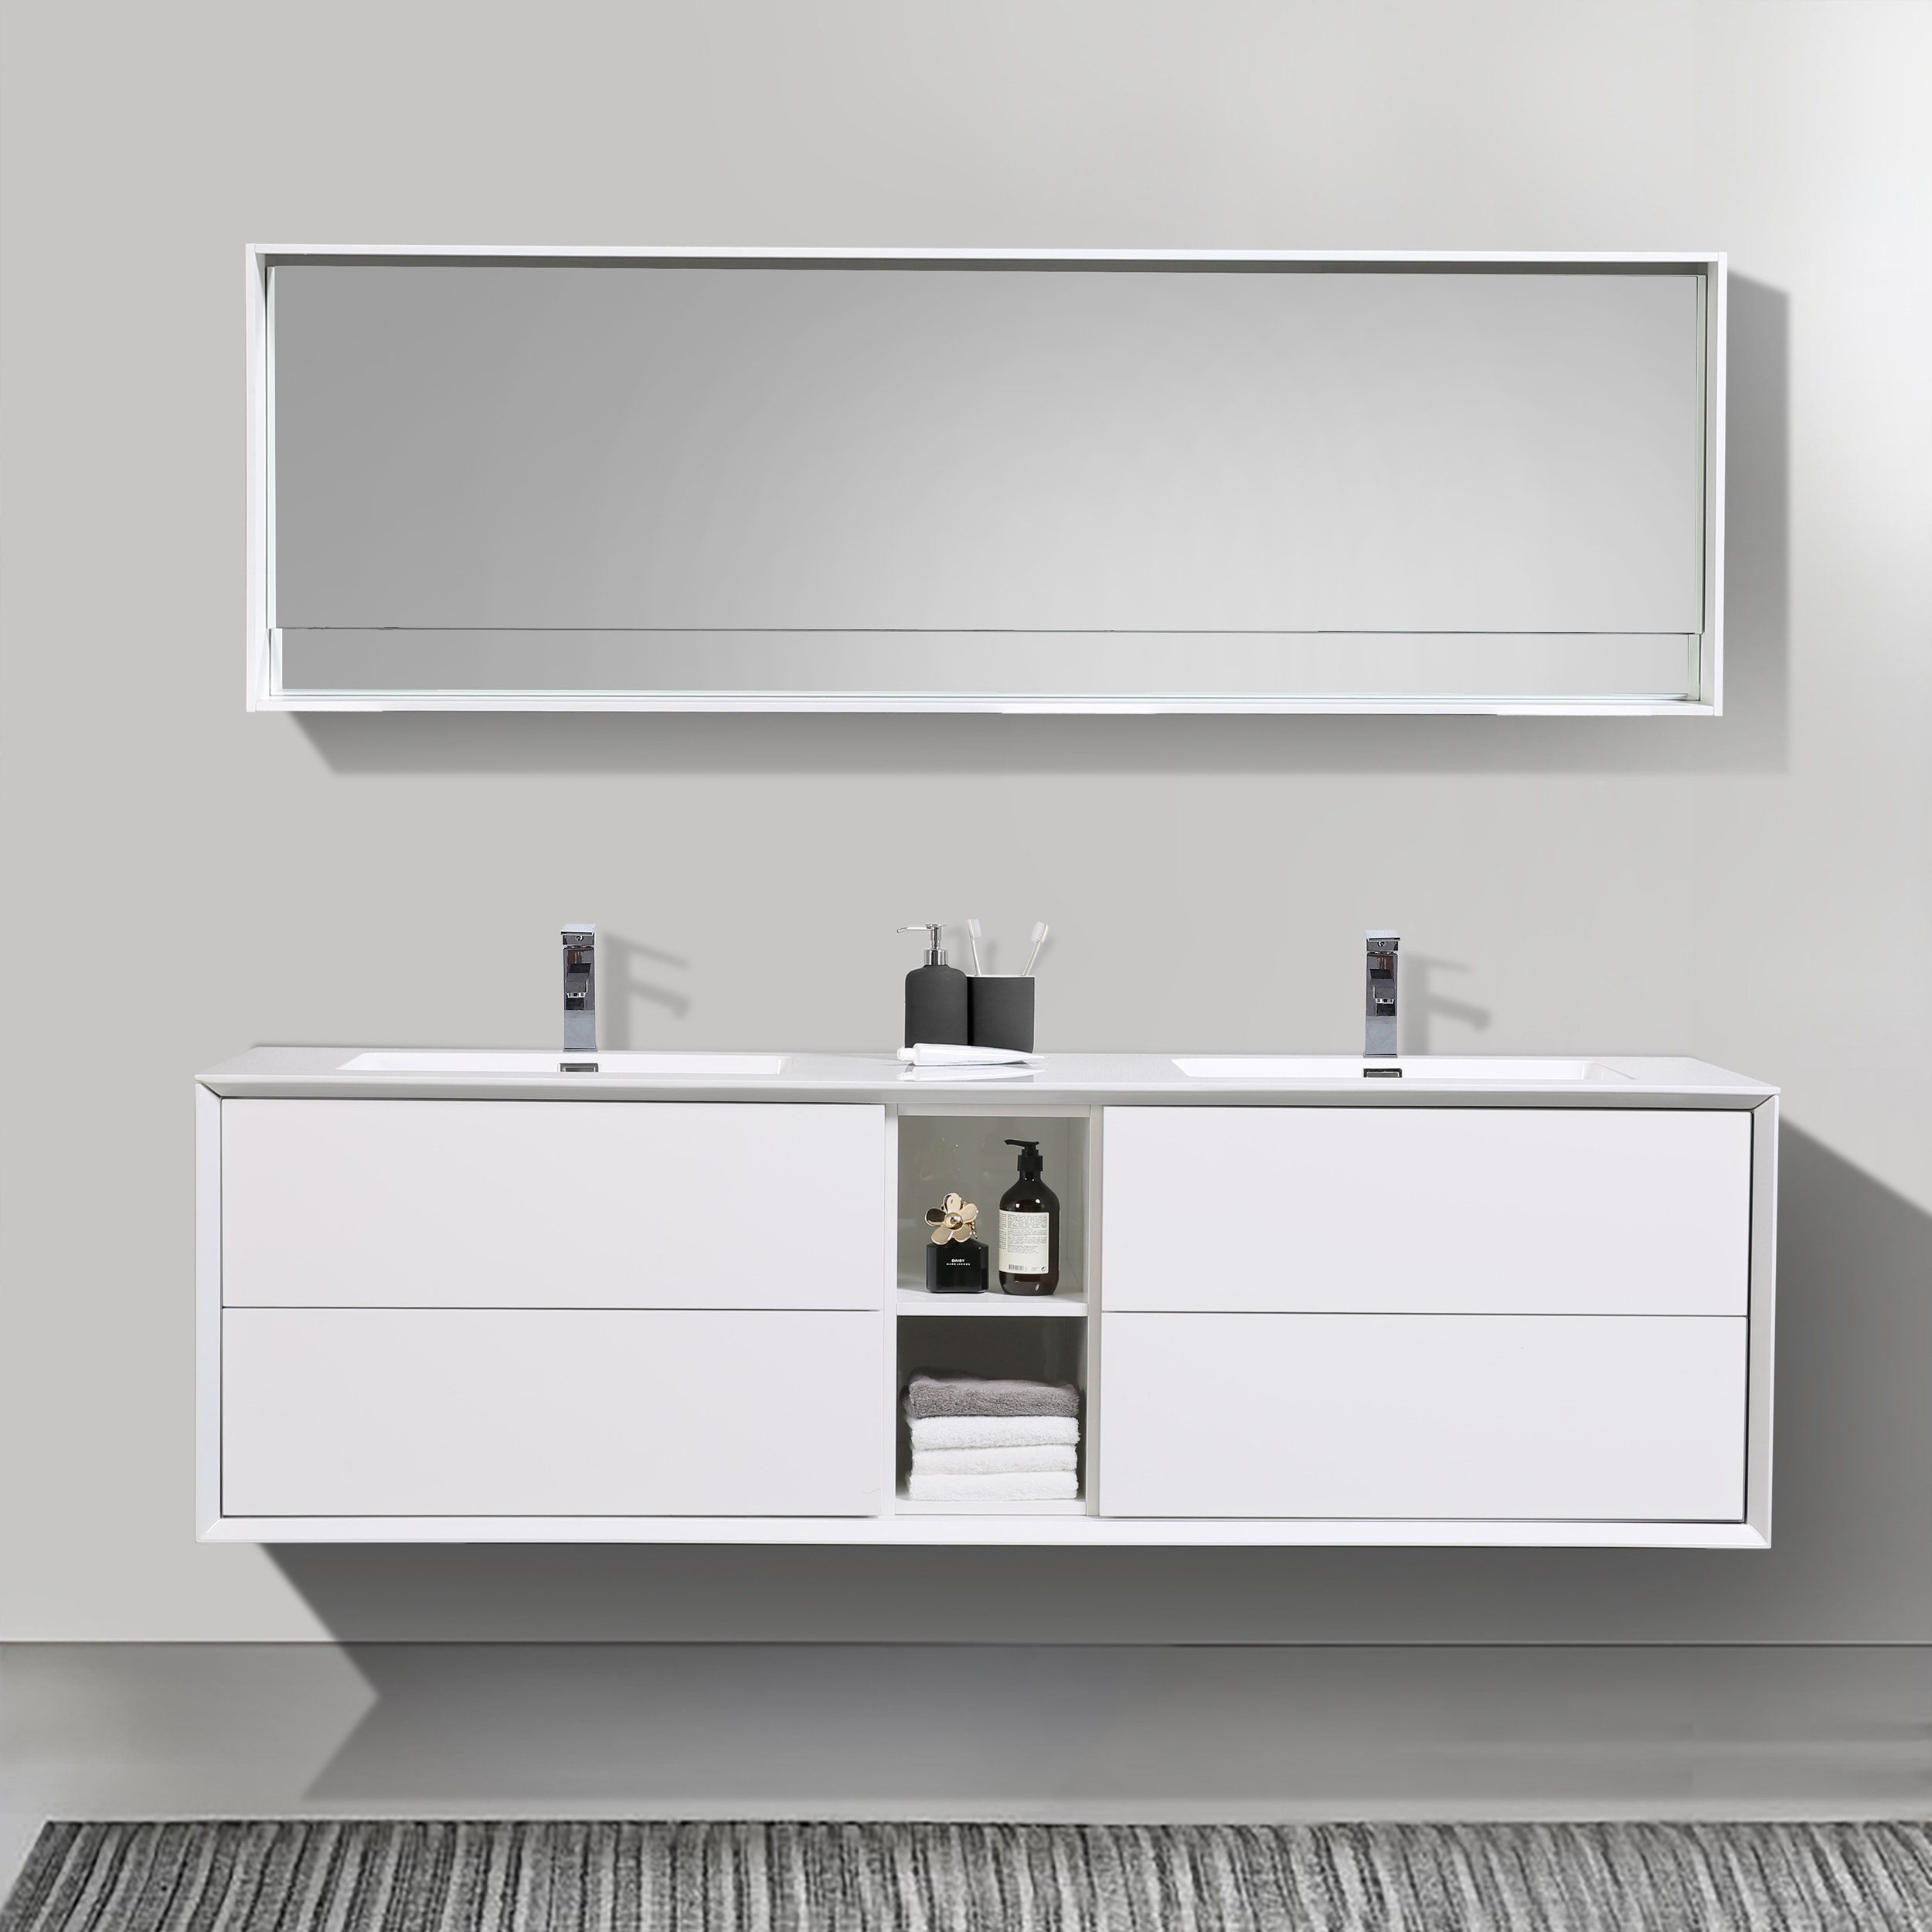 Contemporary Gloss White Vanity Set 75 Save Money When You Buy A Set Of 3 Compare Gray Bathroom Accessories Green Bathroom Accessories Light Green Bathrooms